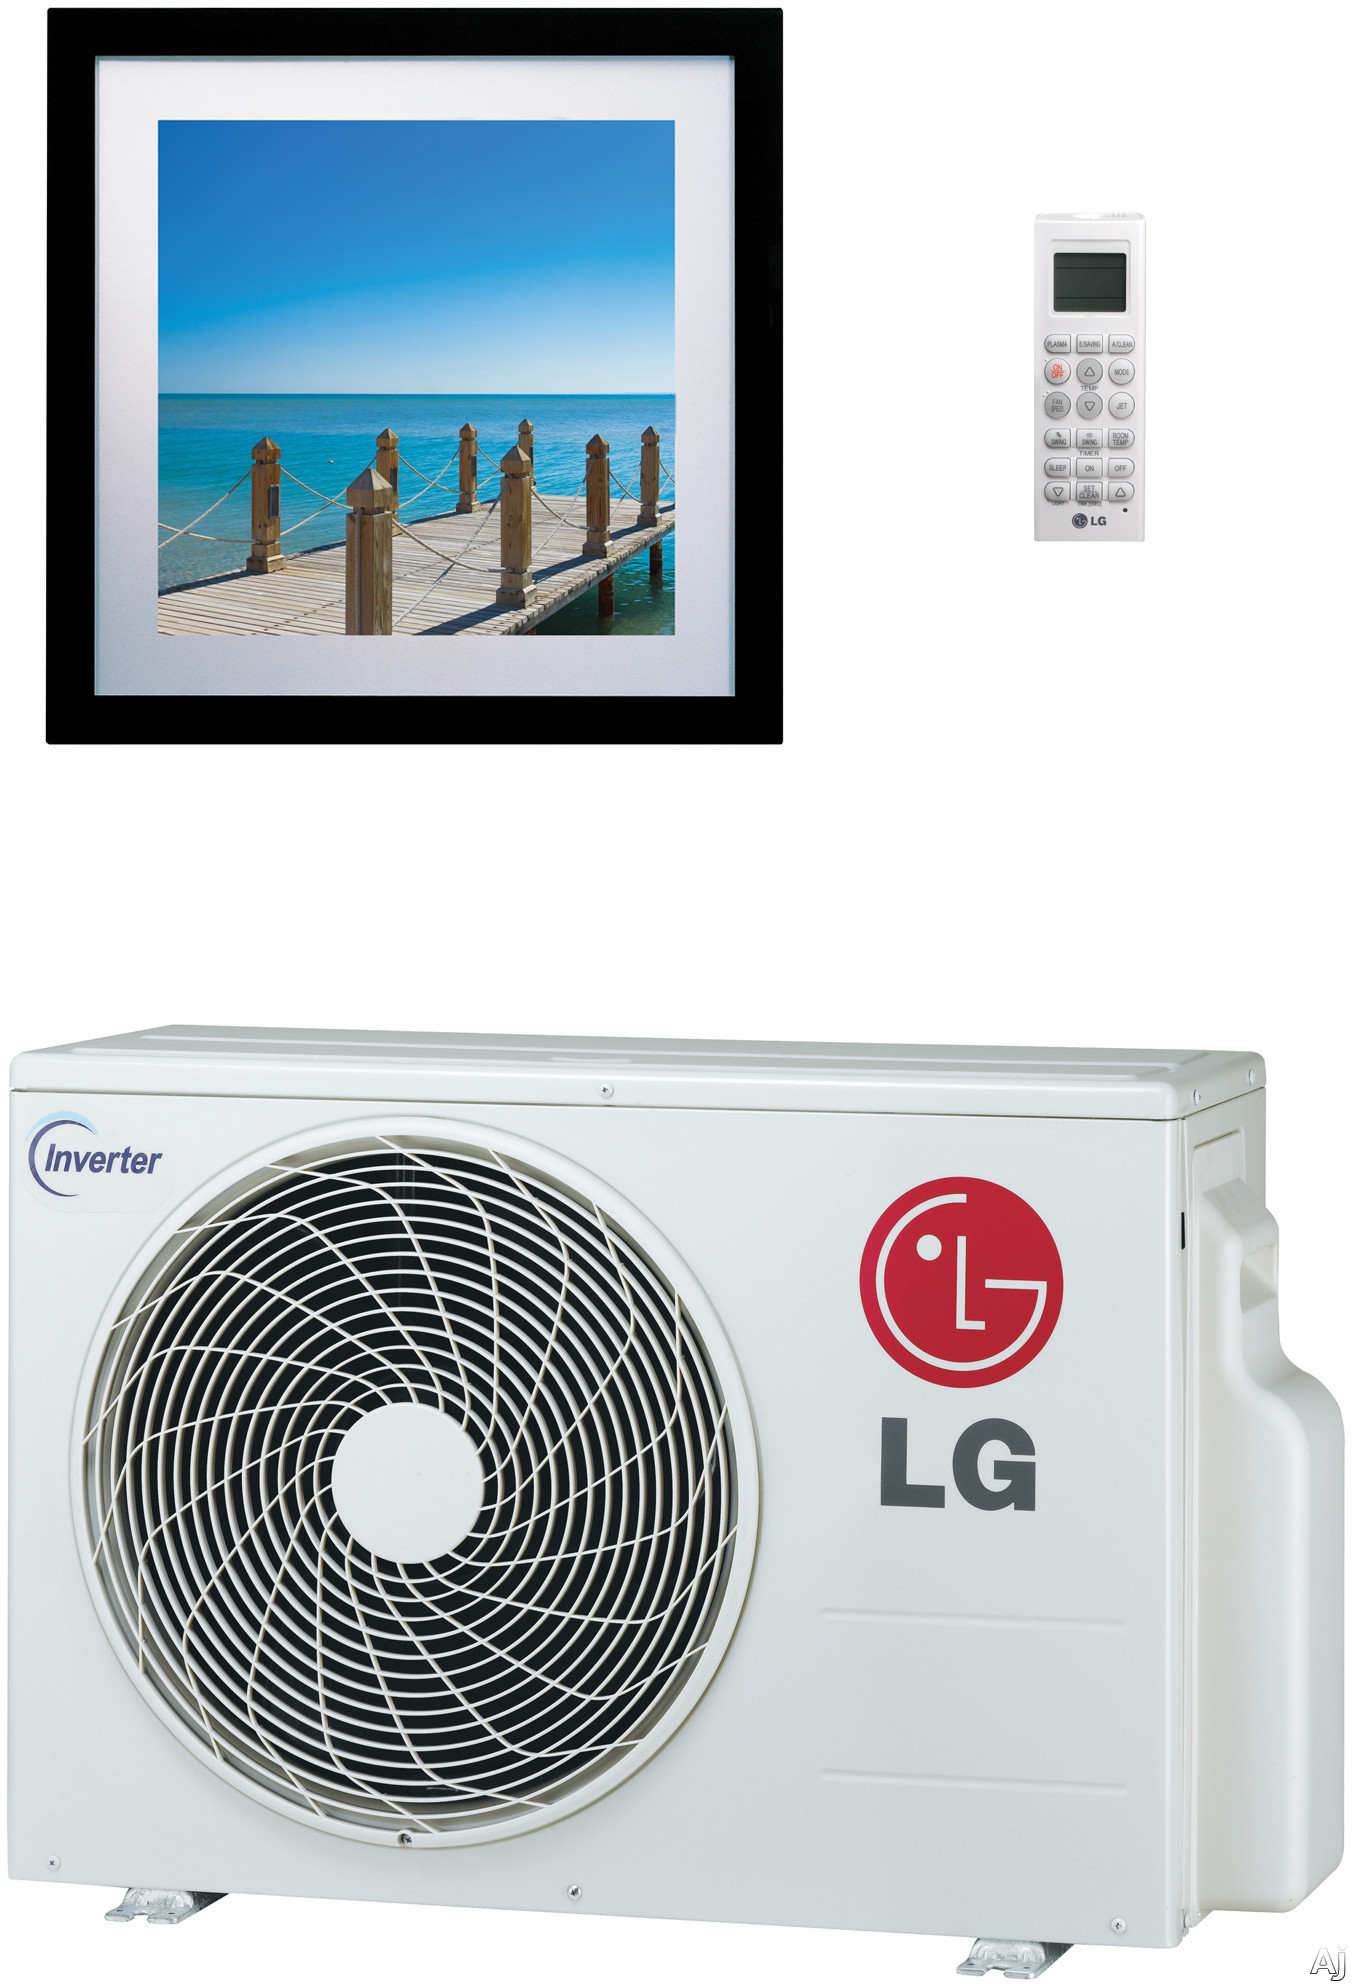 LG Art Cool Gallery LA090HVP 9,000 BTU Single Zone Wall-Mount Ductless Split System with 10,800 BTU Heat Pump, 12.5 EER, Inverter and R-410A Refrigerant (LAN090HVP Indoor/LAU090HVP Outdoor)